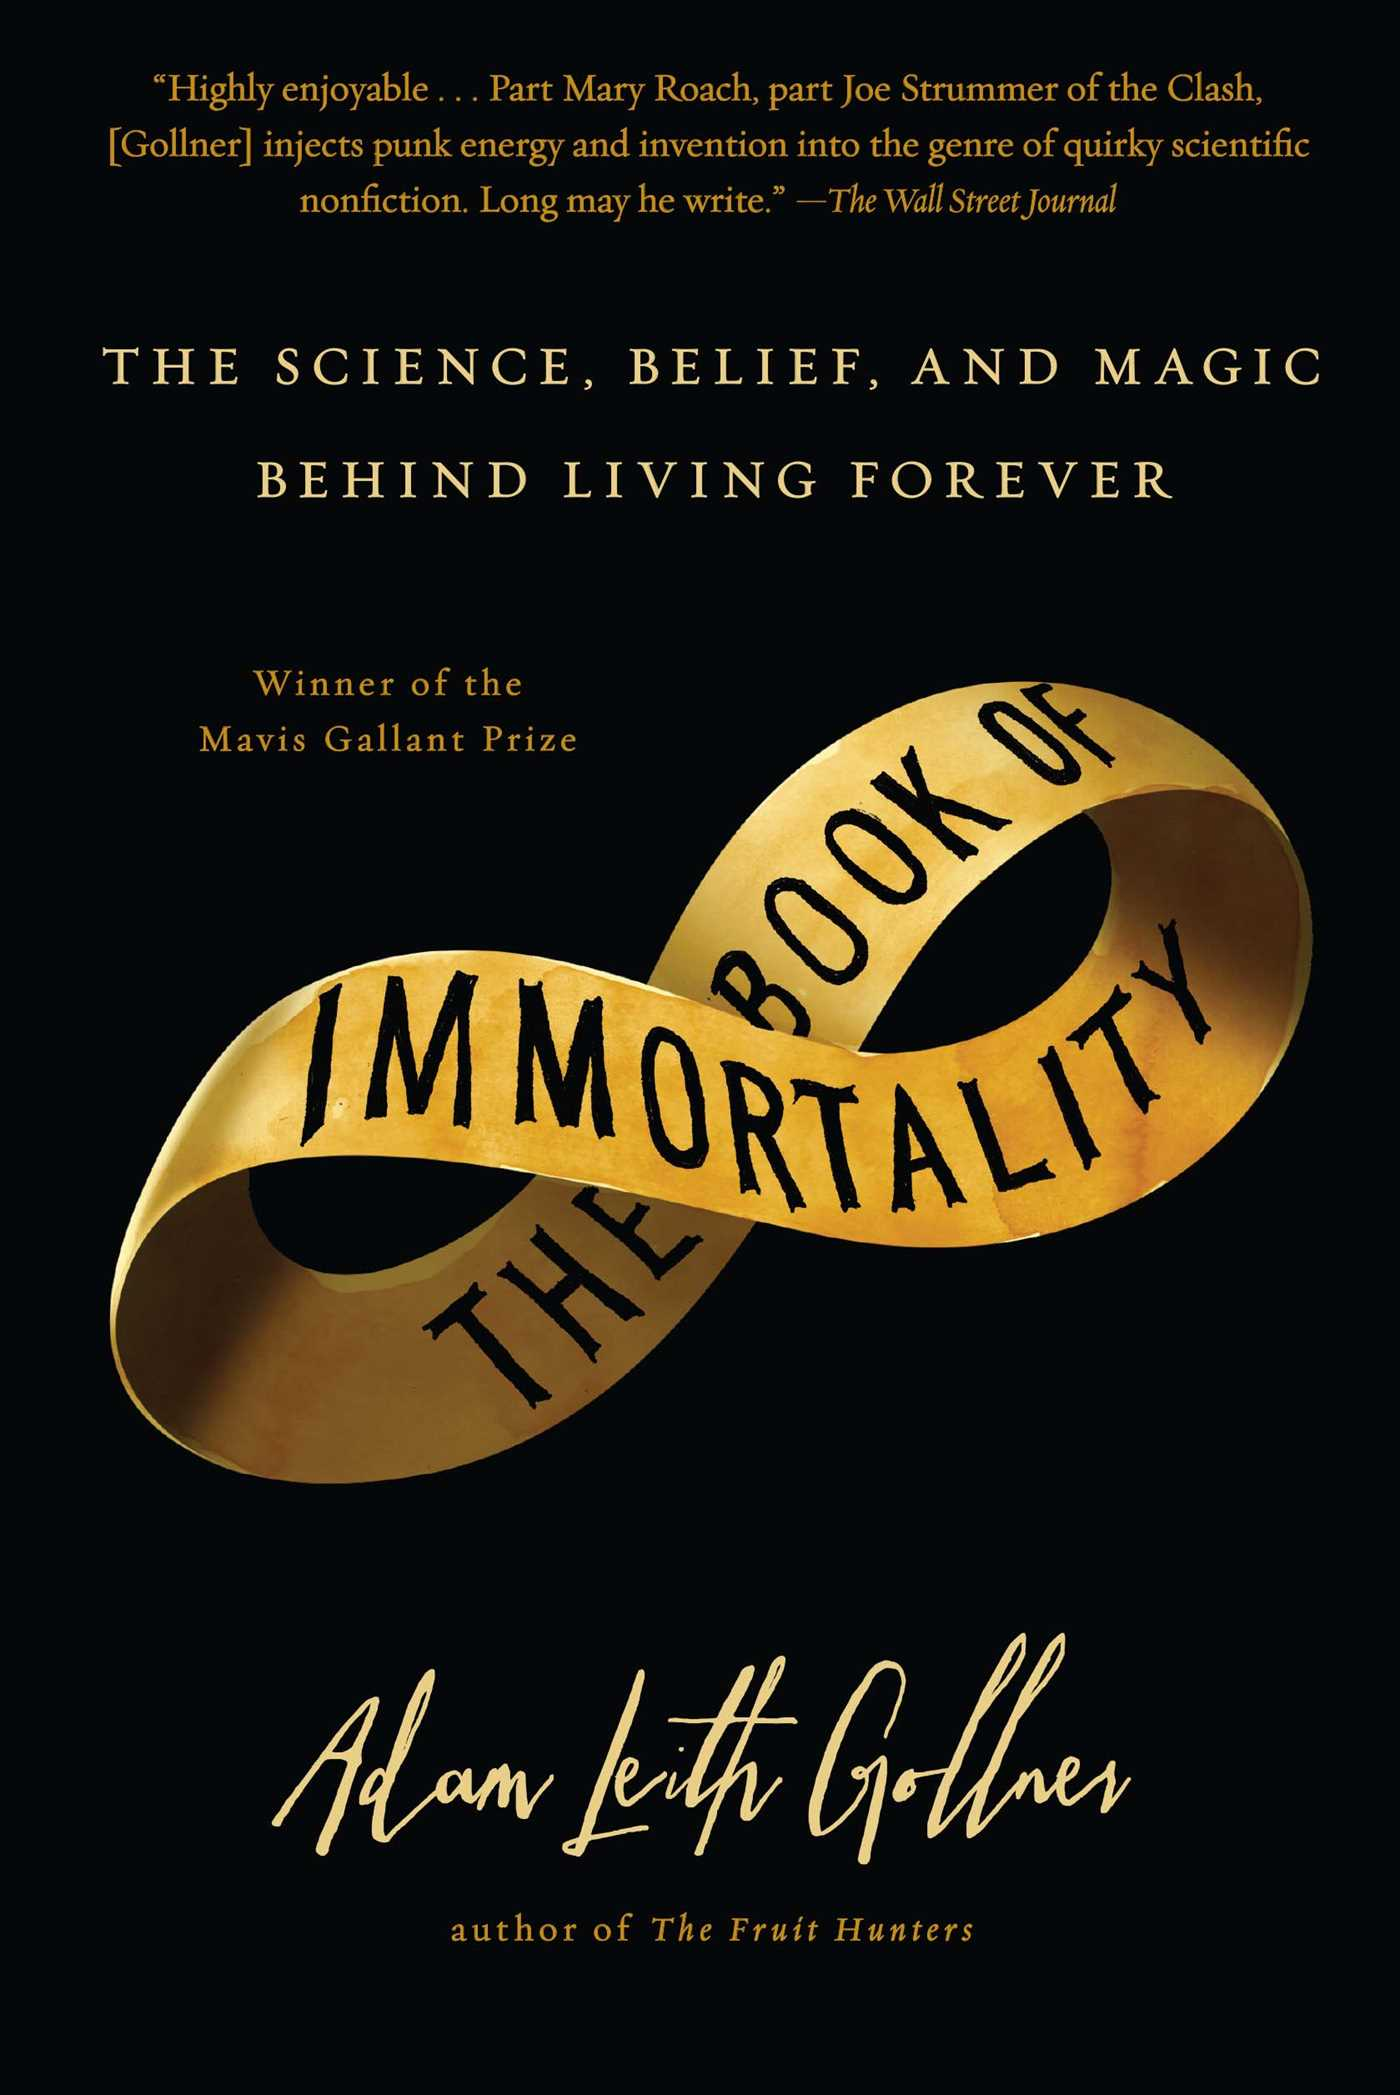 The book of immortality 9781439127889 hr